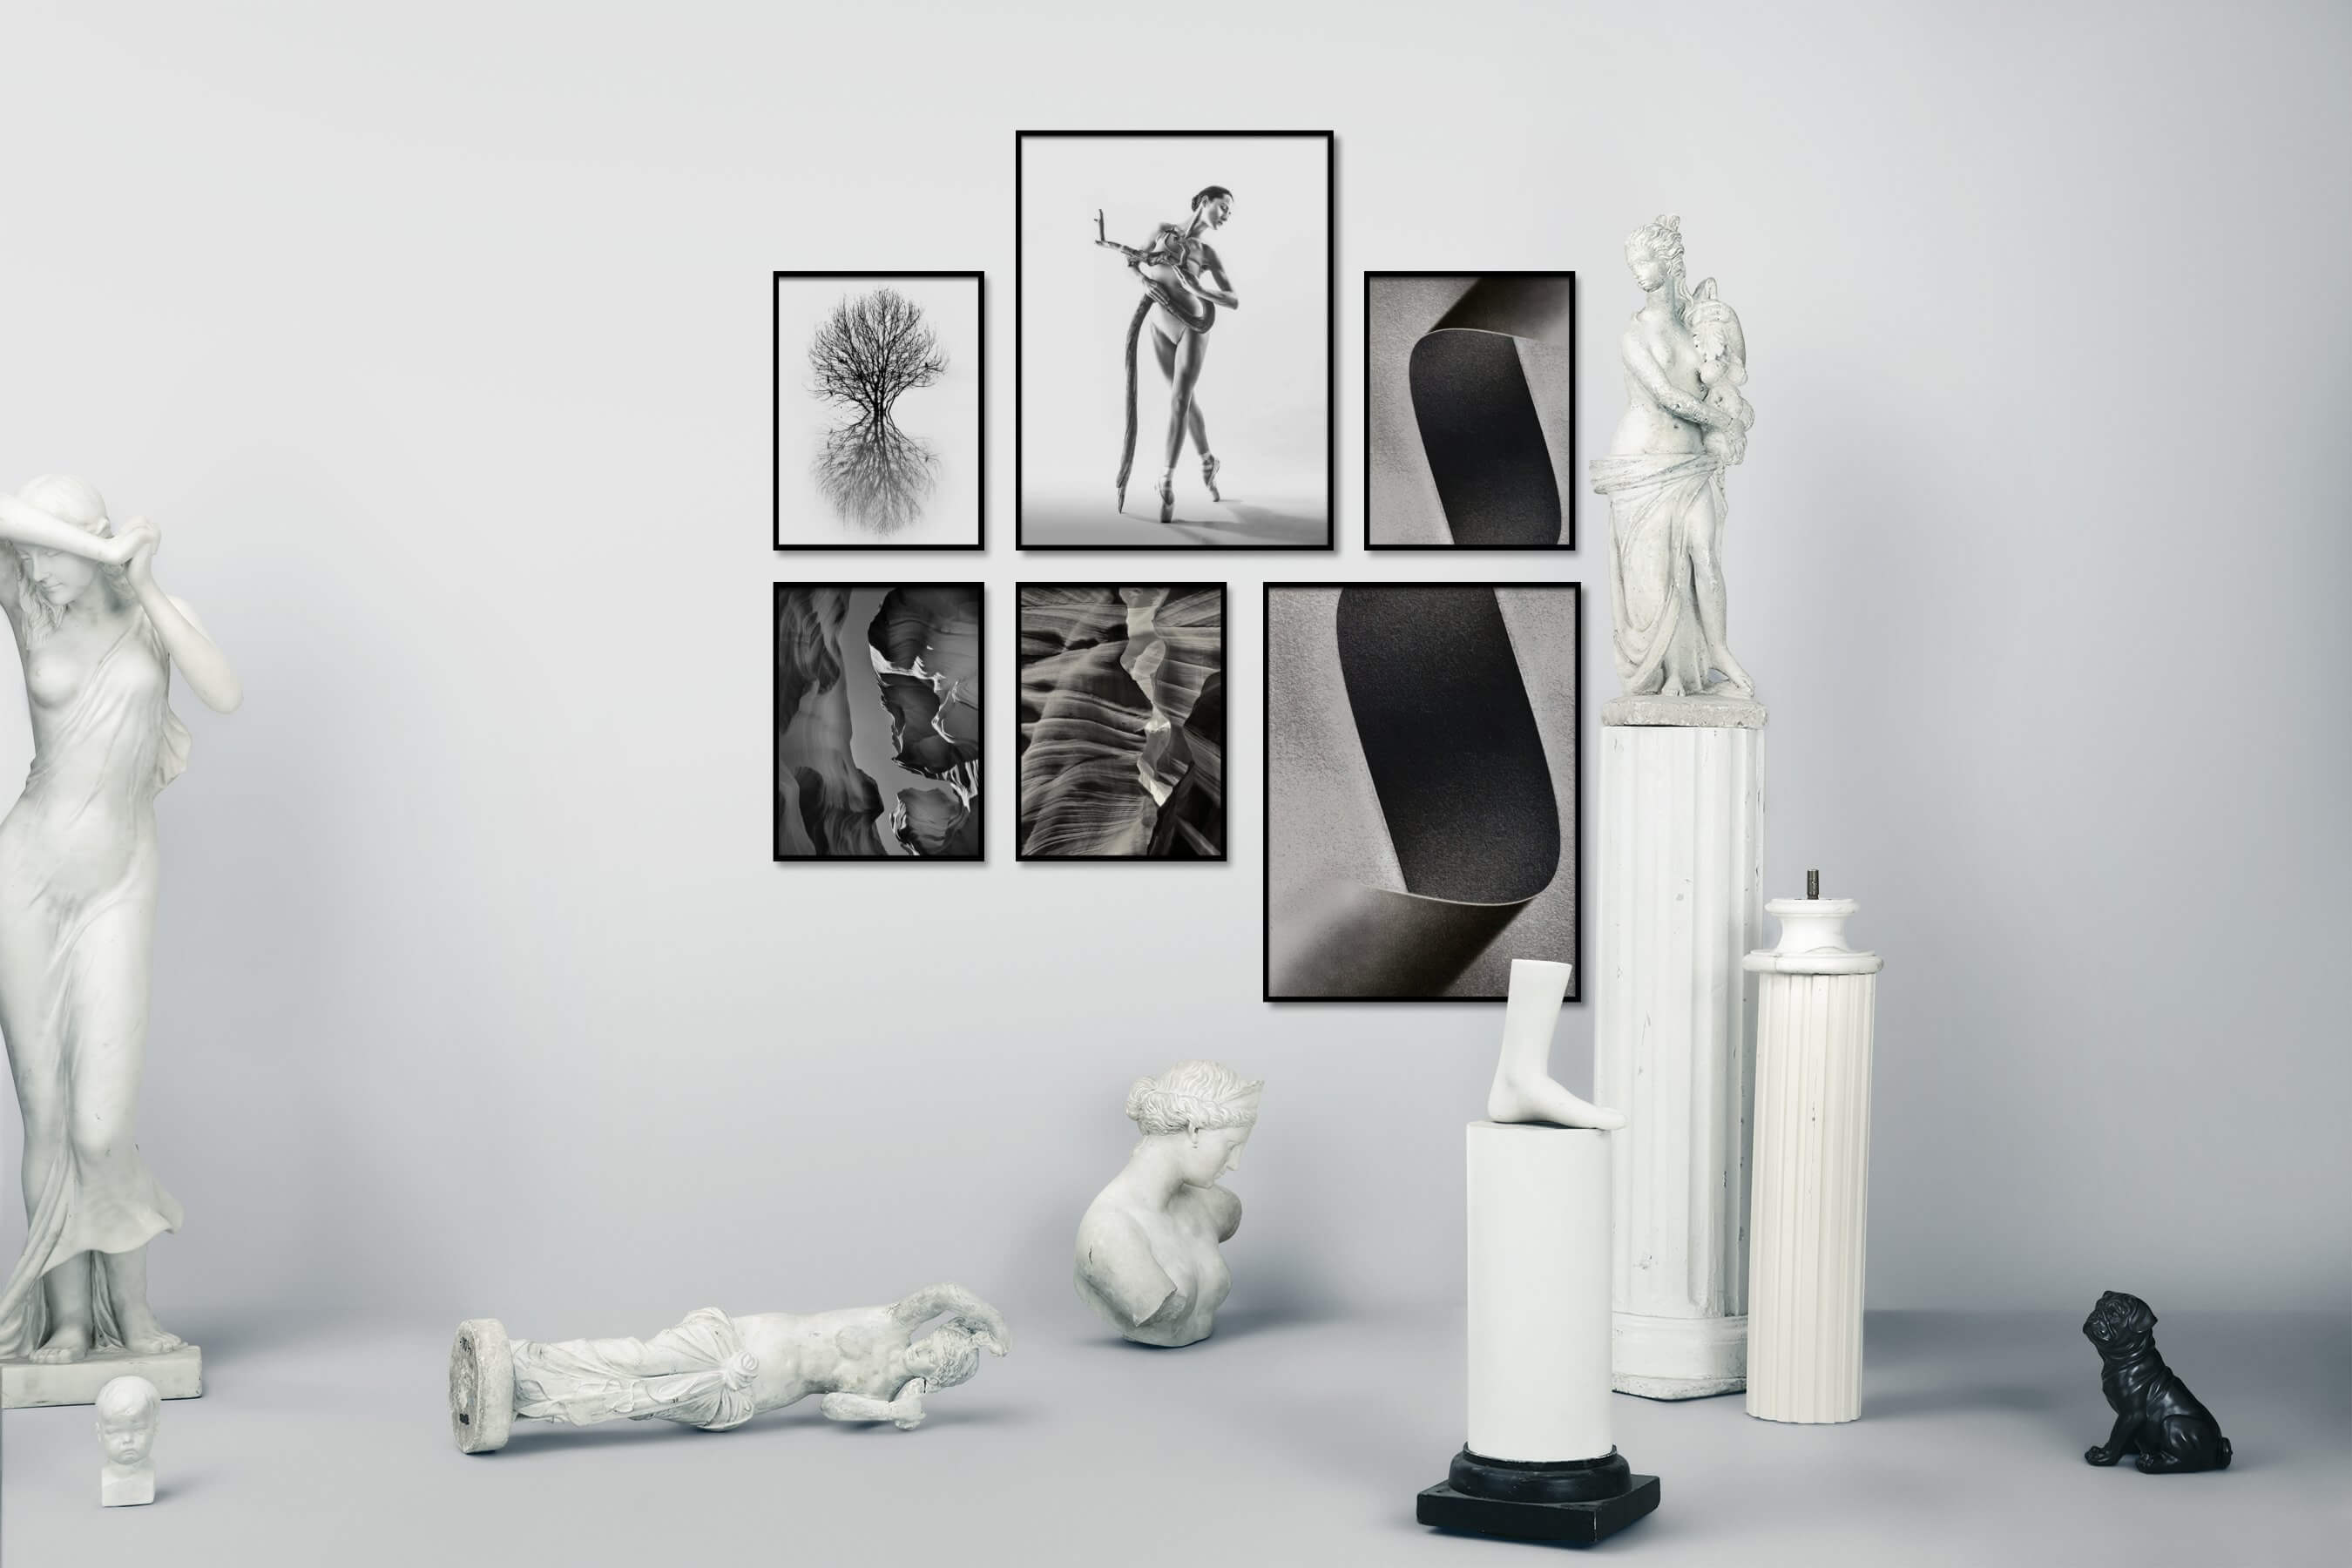 Gallery wall idea with six framed pictures arranged on a wall depicting Black & White, Bright Tones, For the Minimalist, Nature, Fashion & Beauty, For the Moderate, and For the Maximalist